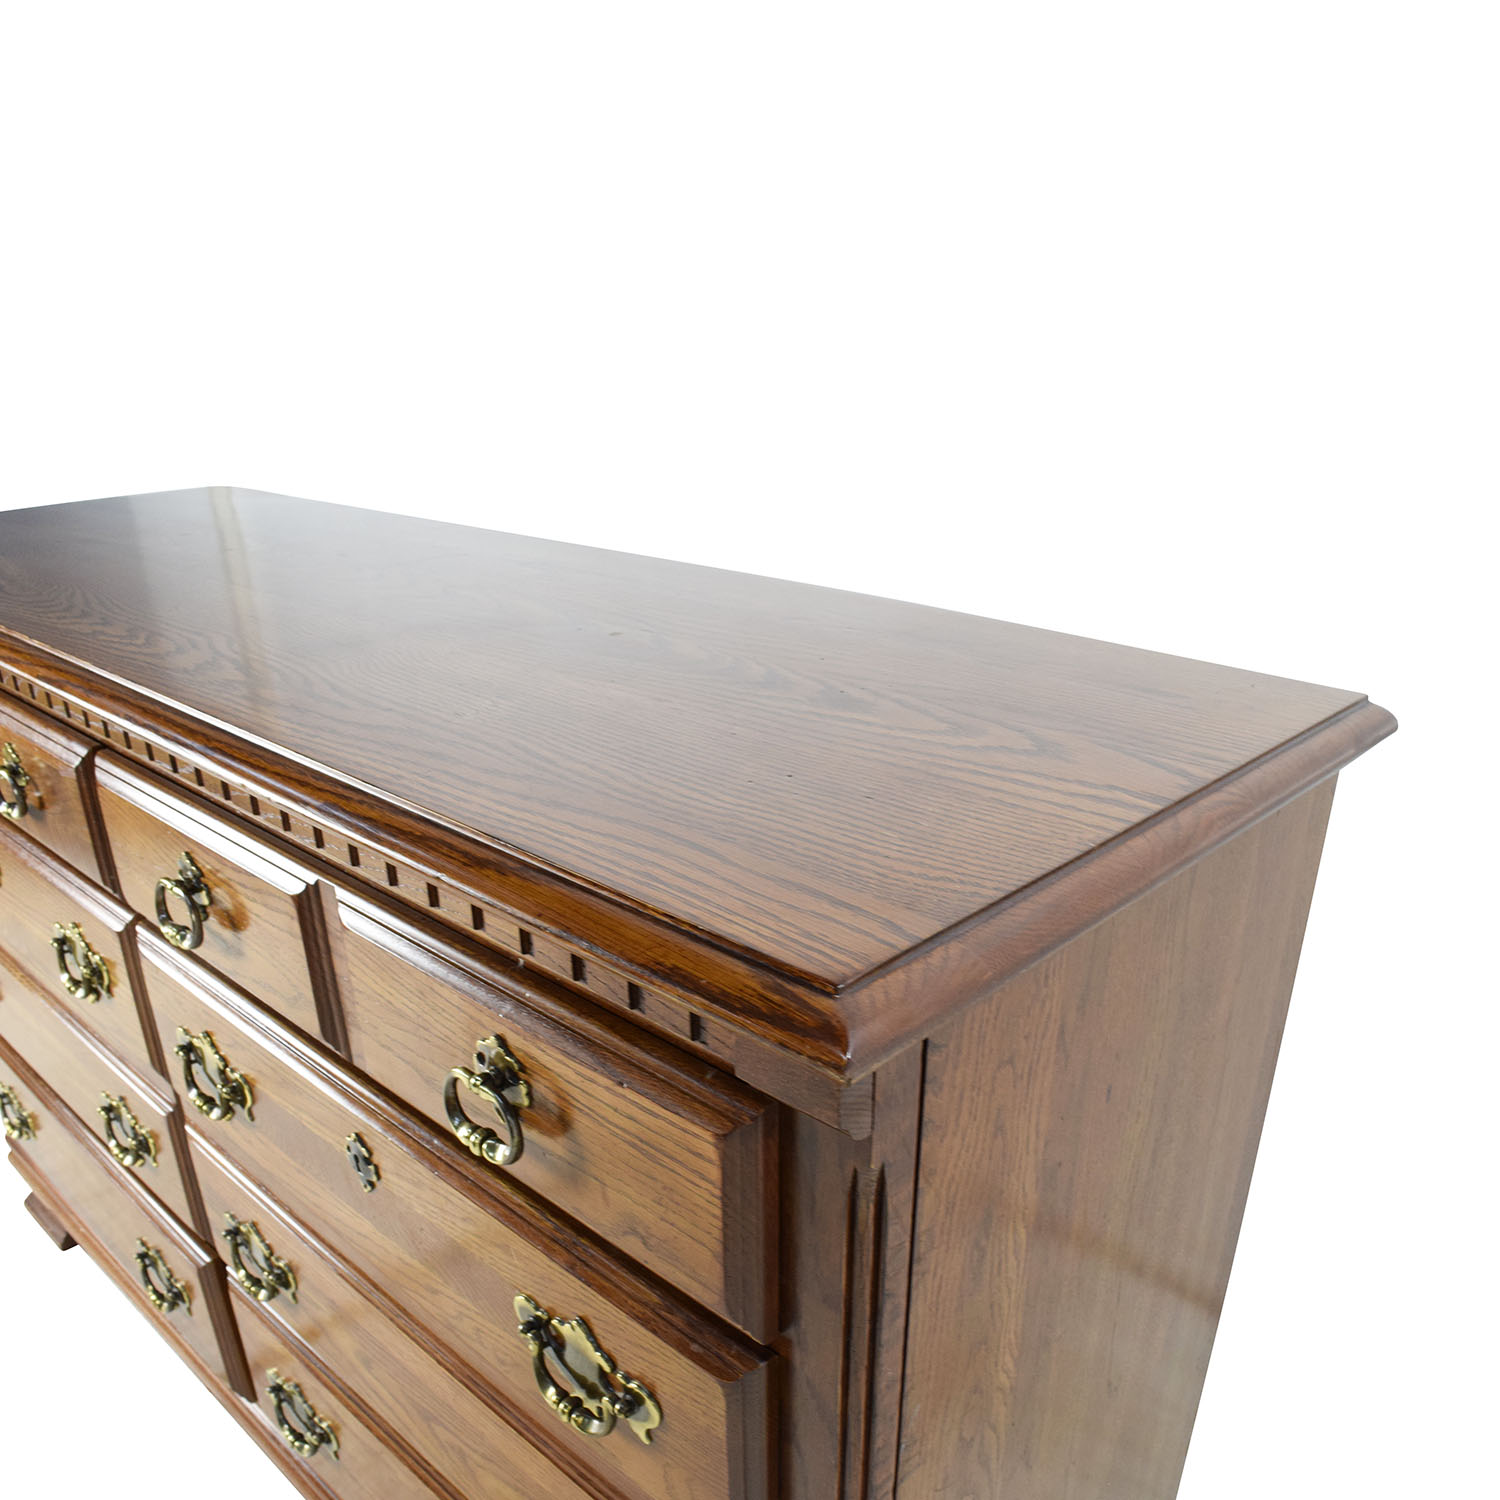 Kincaid Furniture Solid Wood Dresser Kincaid Furniture. 64  OFF   Kincaid Furniture Kincaid Furniture Solid Wood Dresser